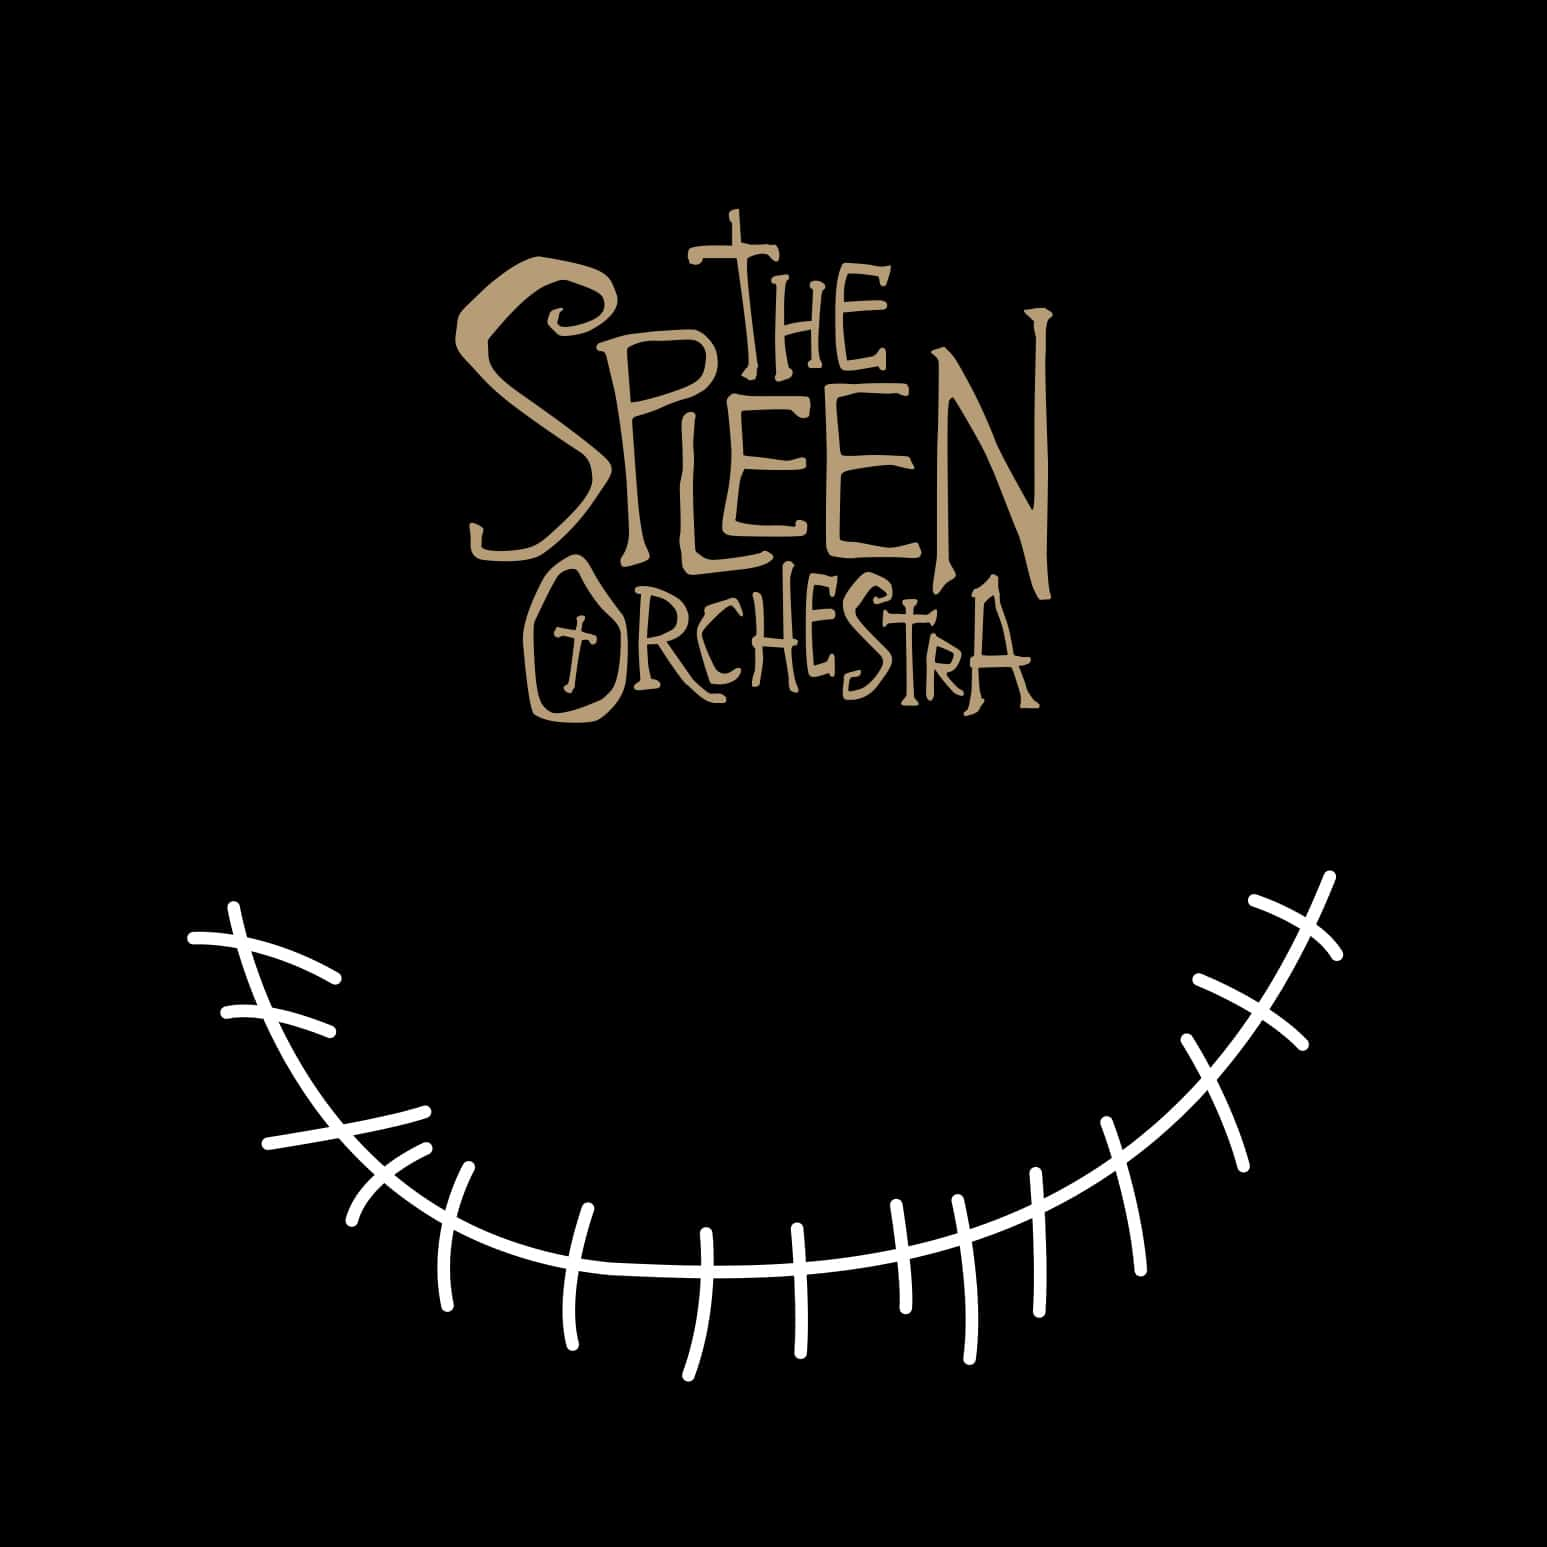 Zampediverse-The Spleen Orchestra